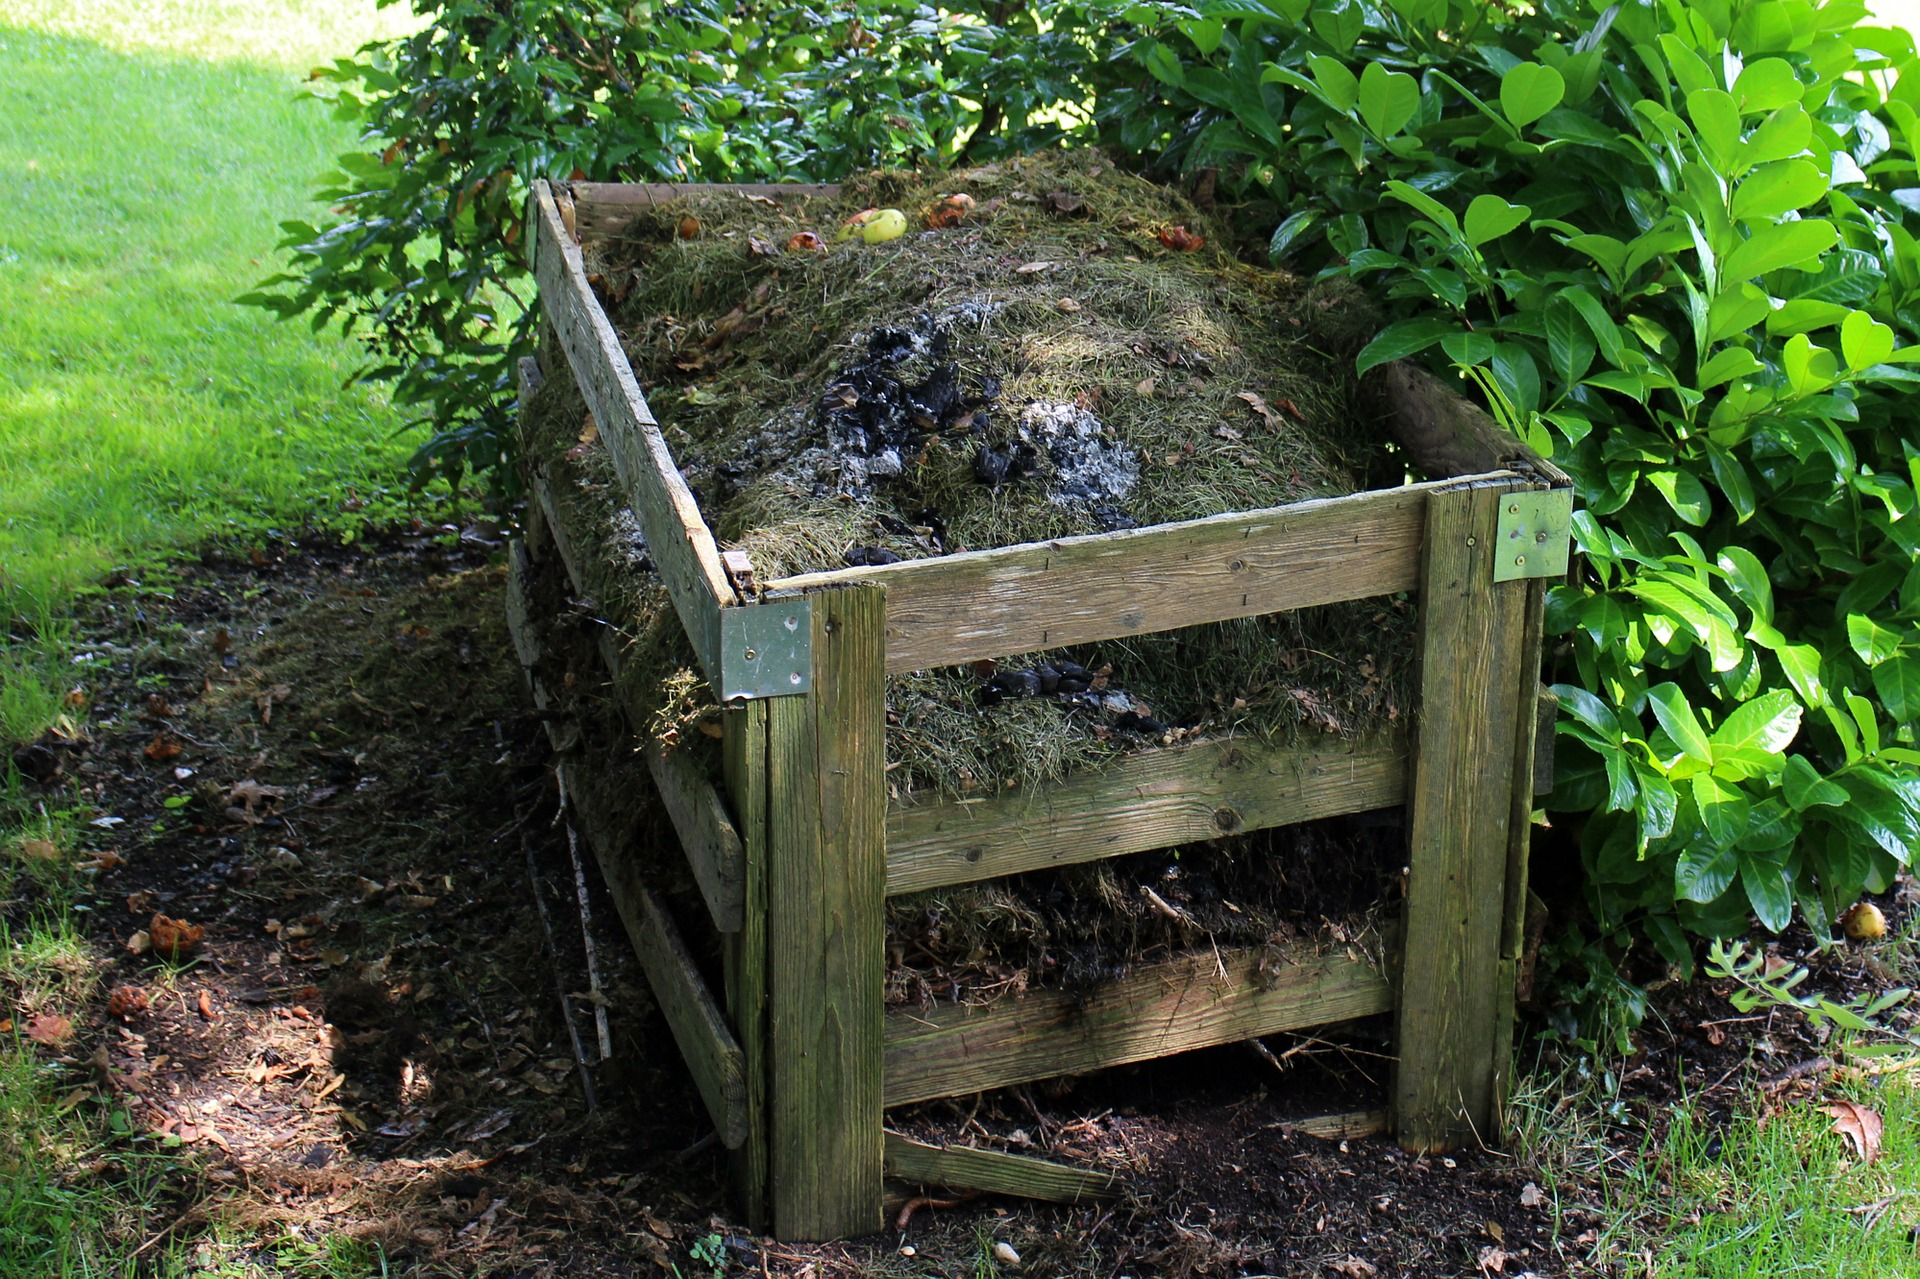 How to Make an Inexpensive DIY Compost Tumbler